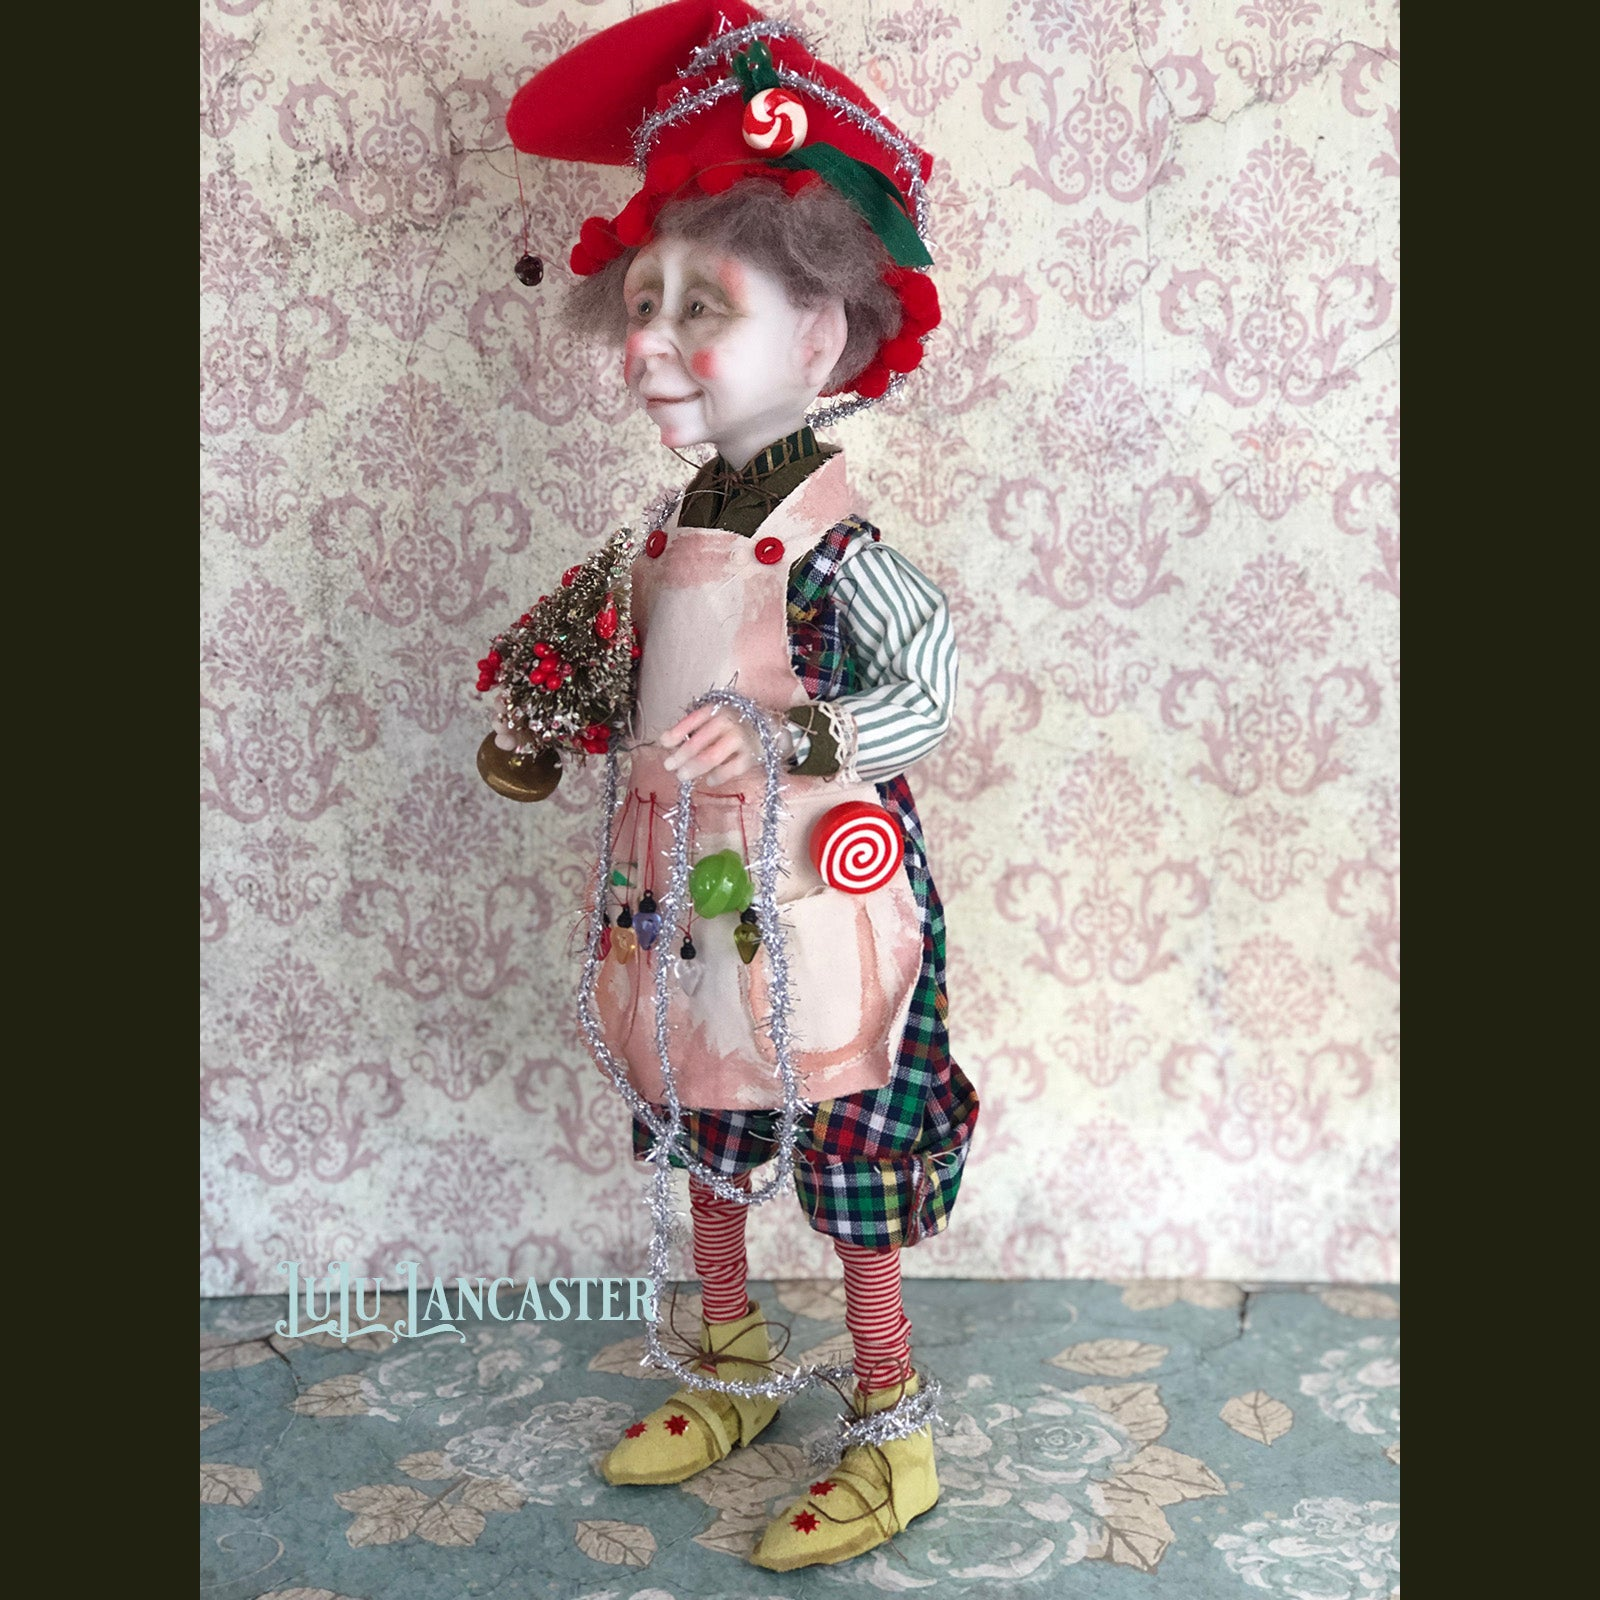 Bernie the Christmas Elf OOAK Art Doll LuLu Lancaster